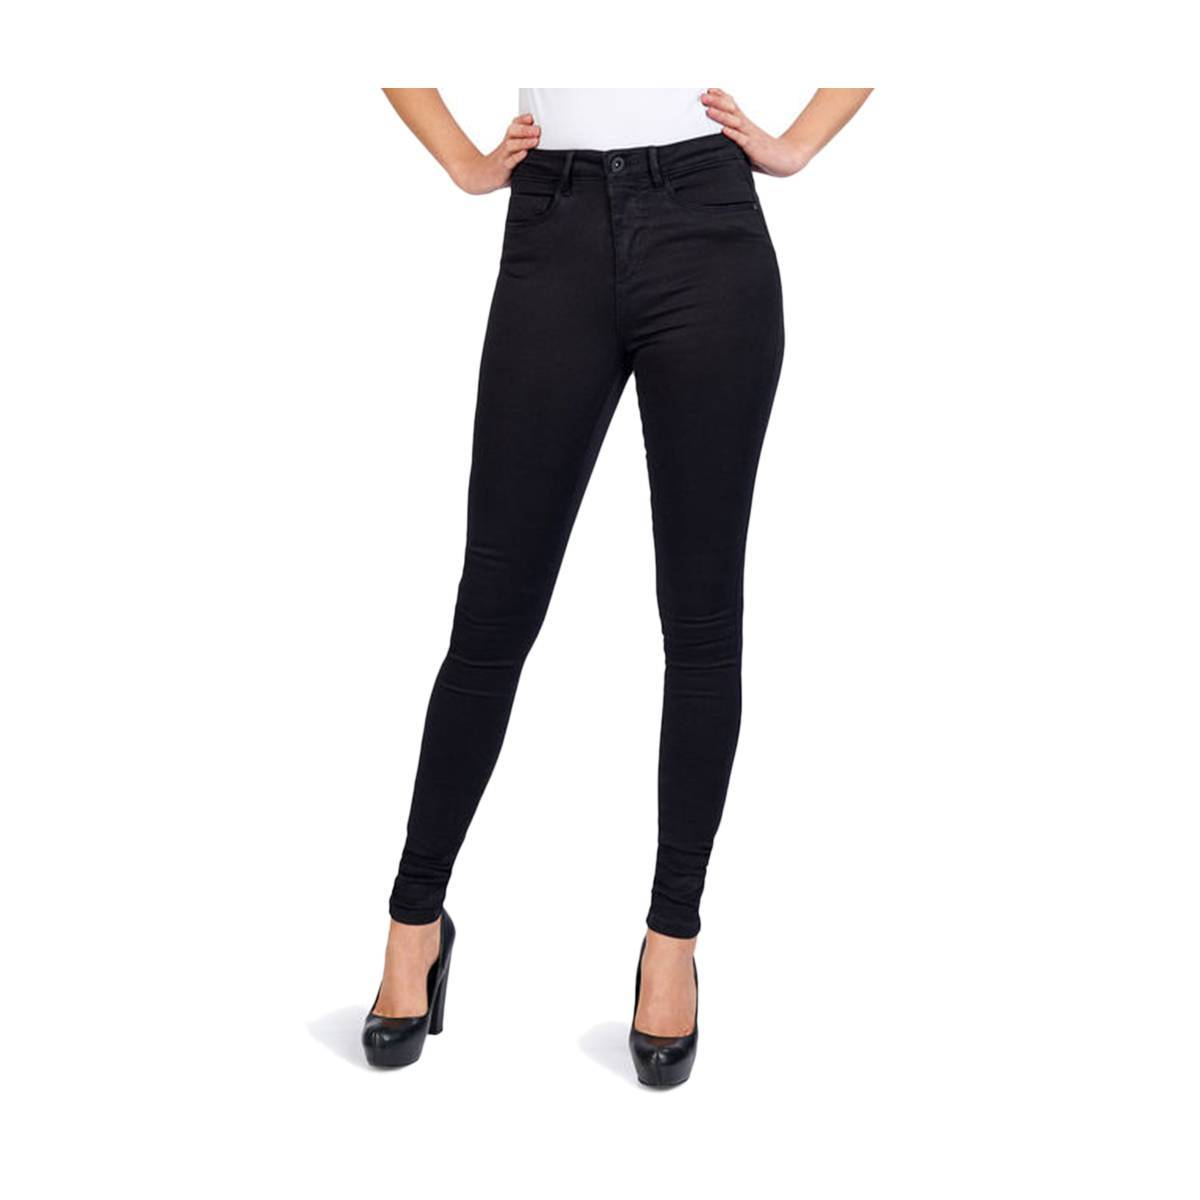 d8f0369afde94 Only ONLROYAL HIGH SK JEANS Skinny Fit pim600 15093134 jeans dames kleding